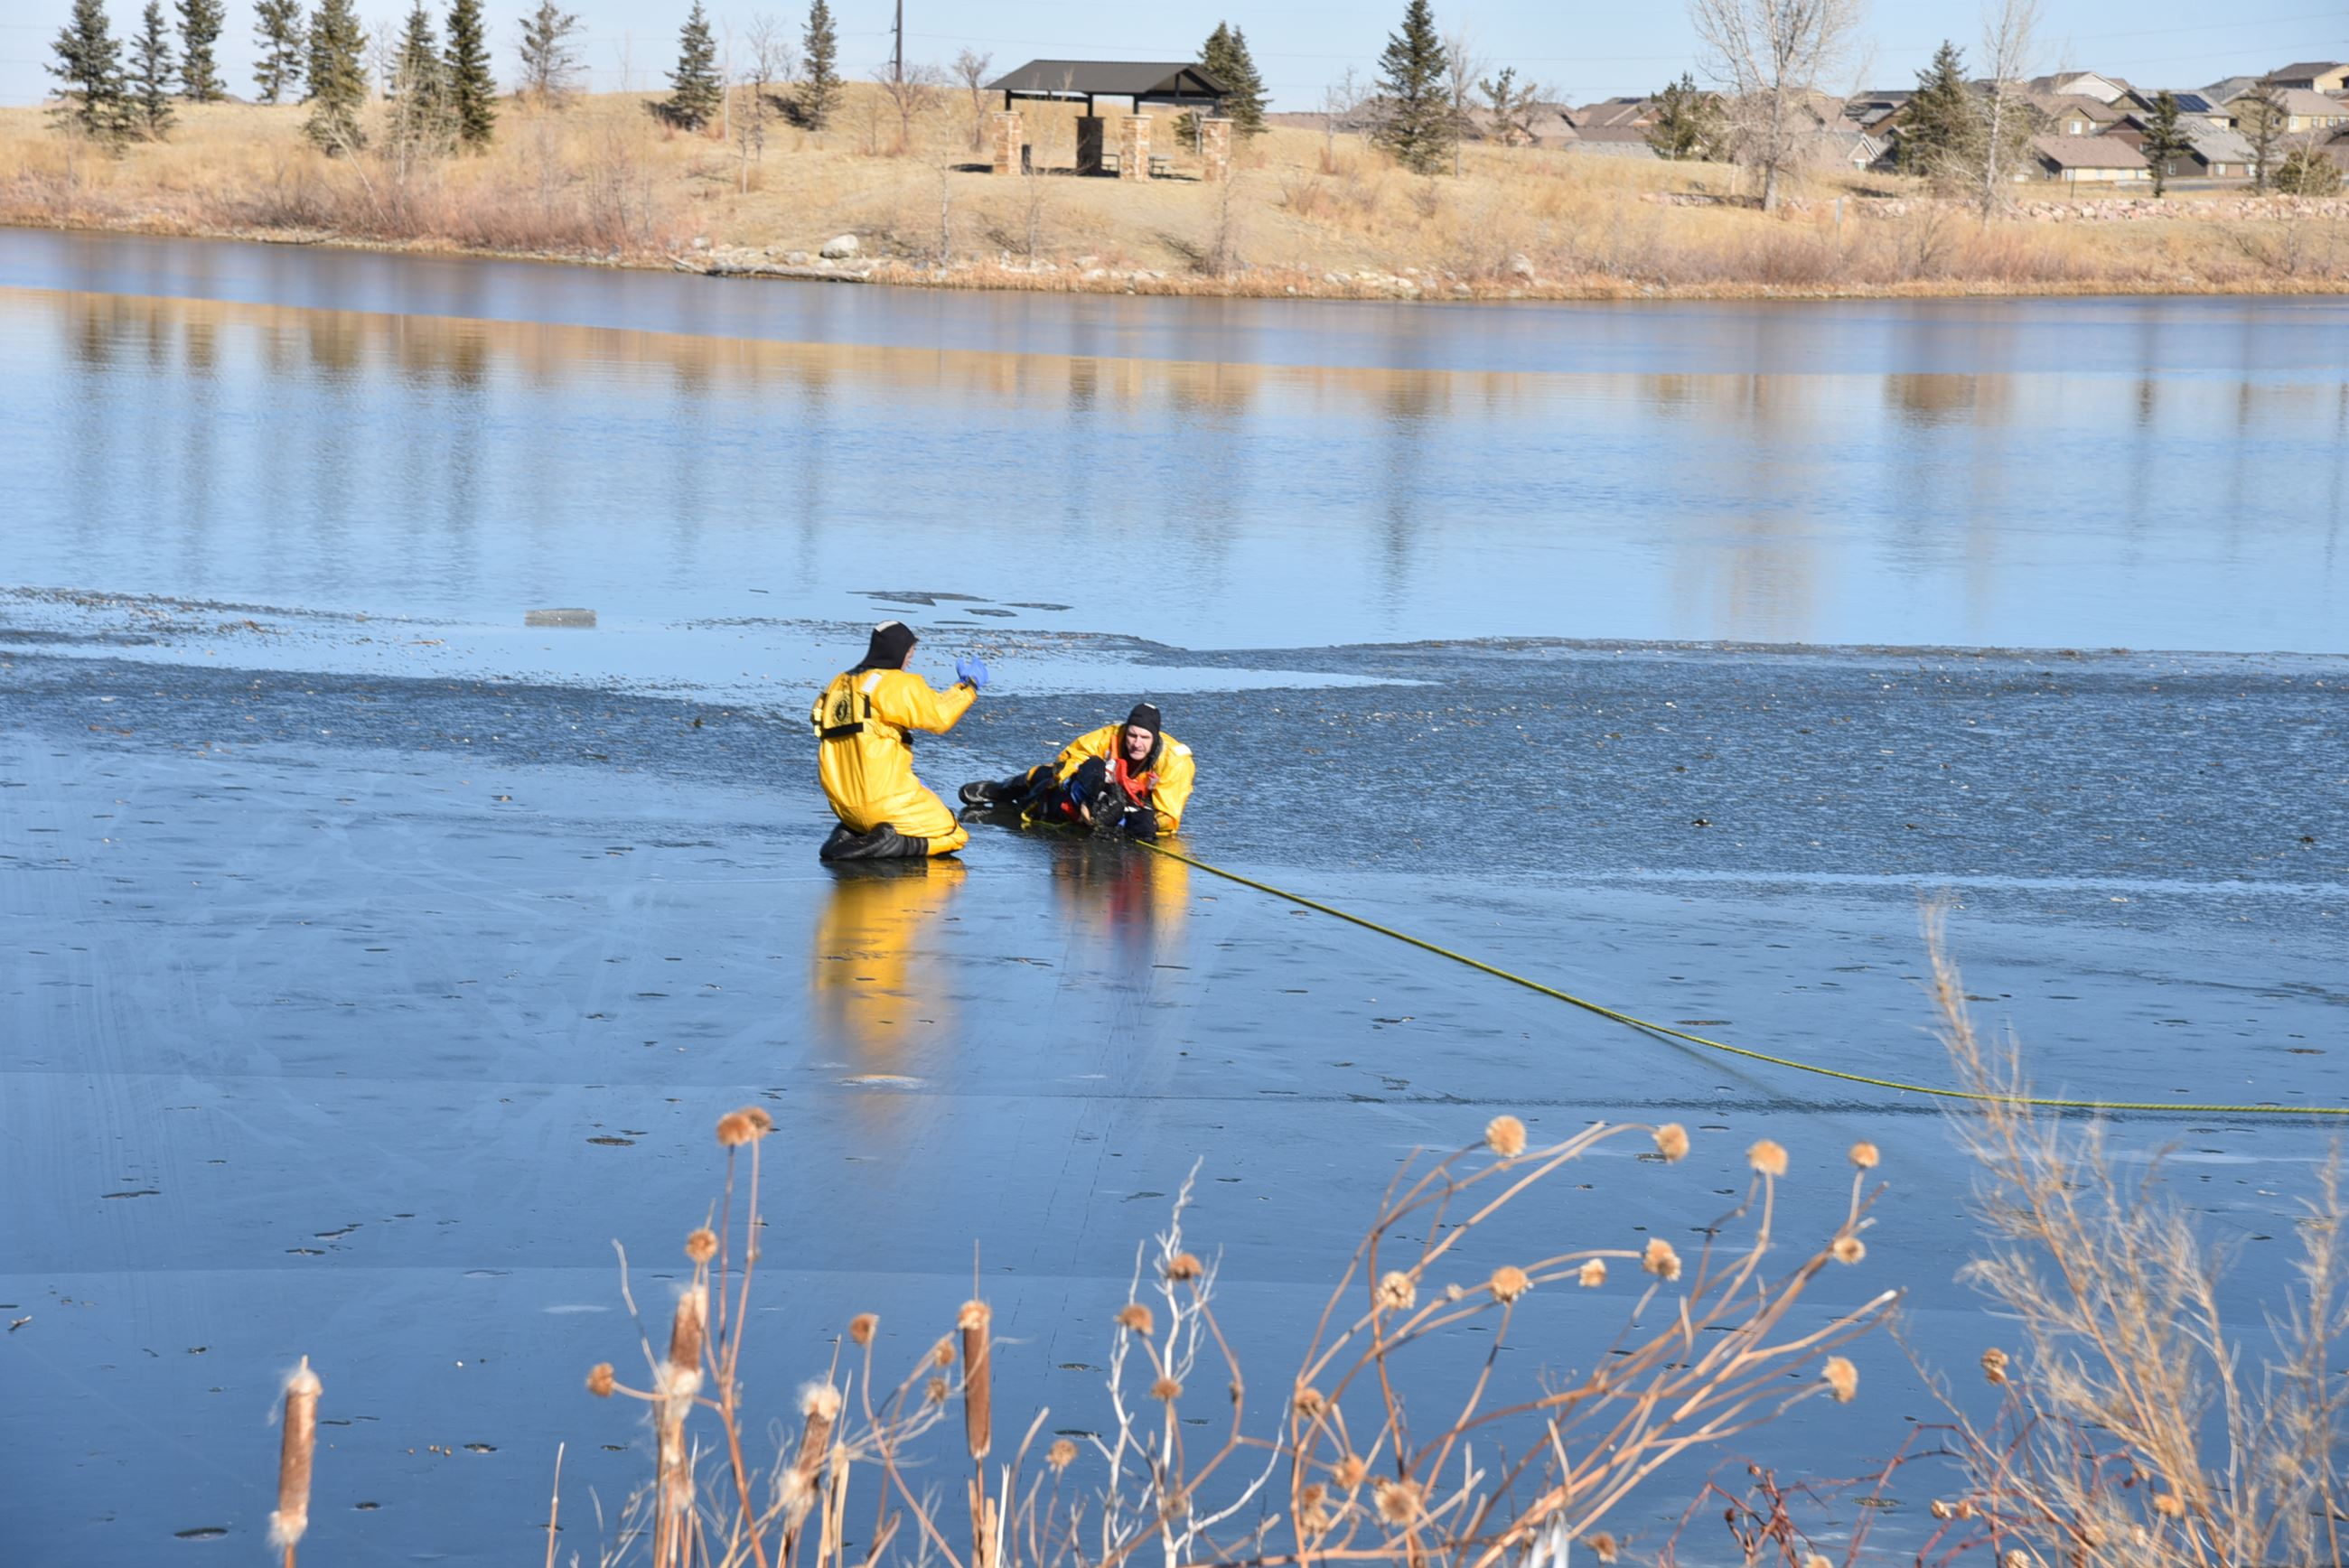 An officer trains a new firefighter on how to rescue a victim who has fallen through the ice.